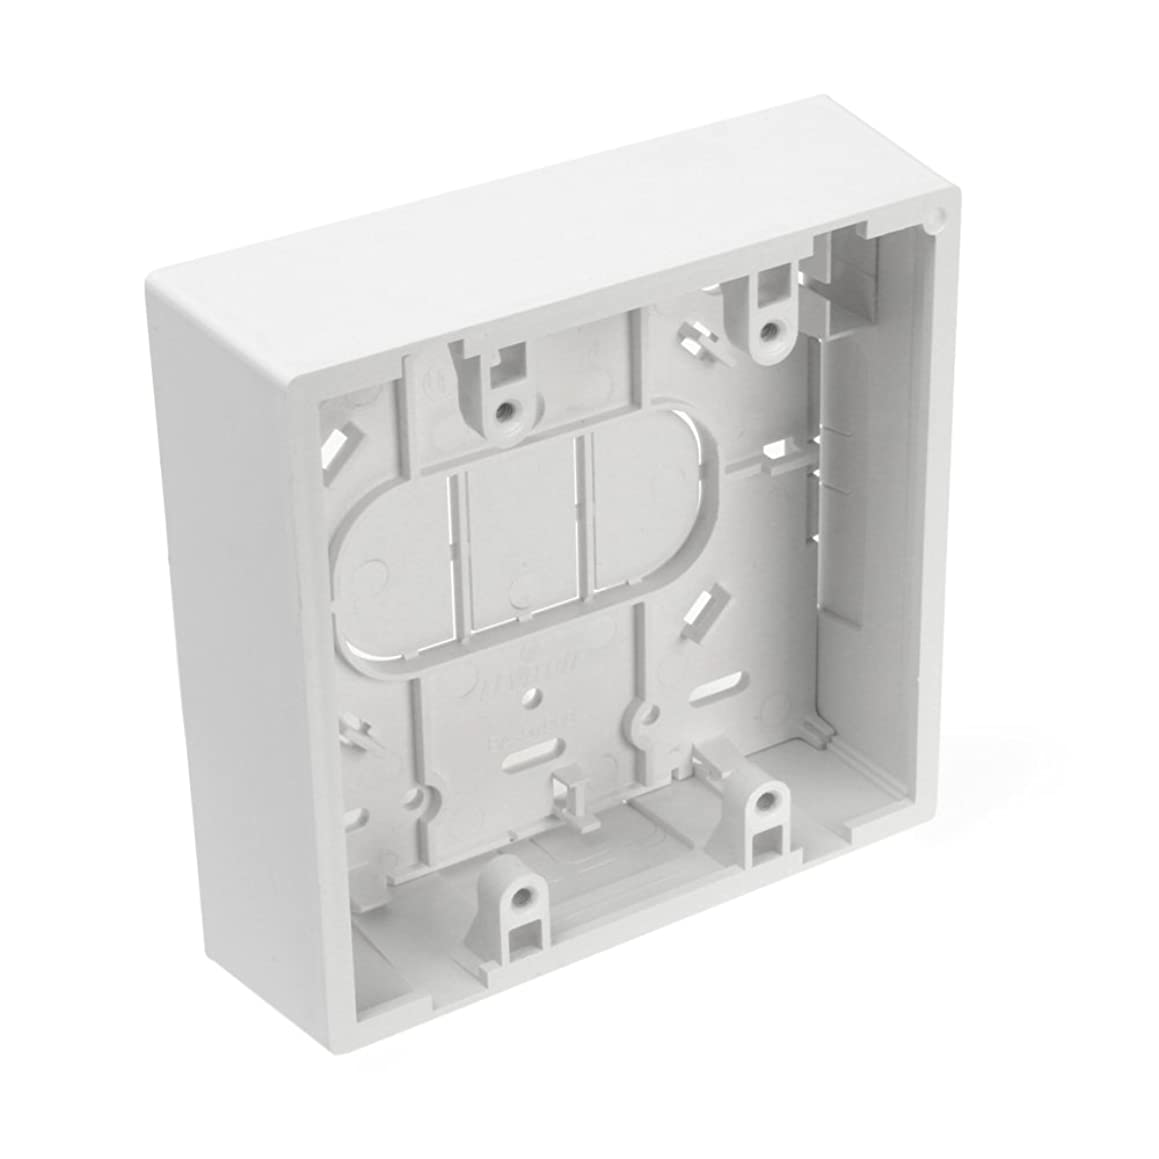 Leviton 42777-2WB Surface Mount Backbox, Dual Gang, White, 1.45